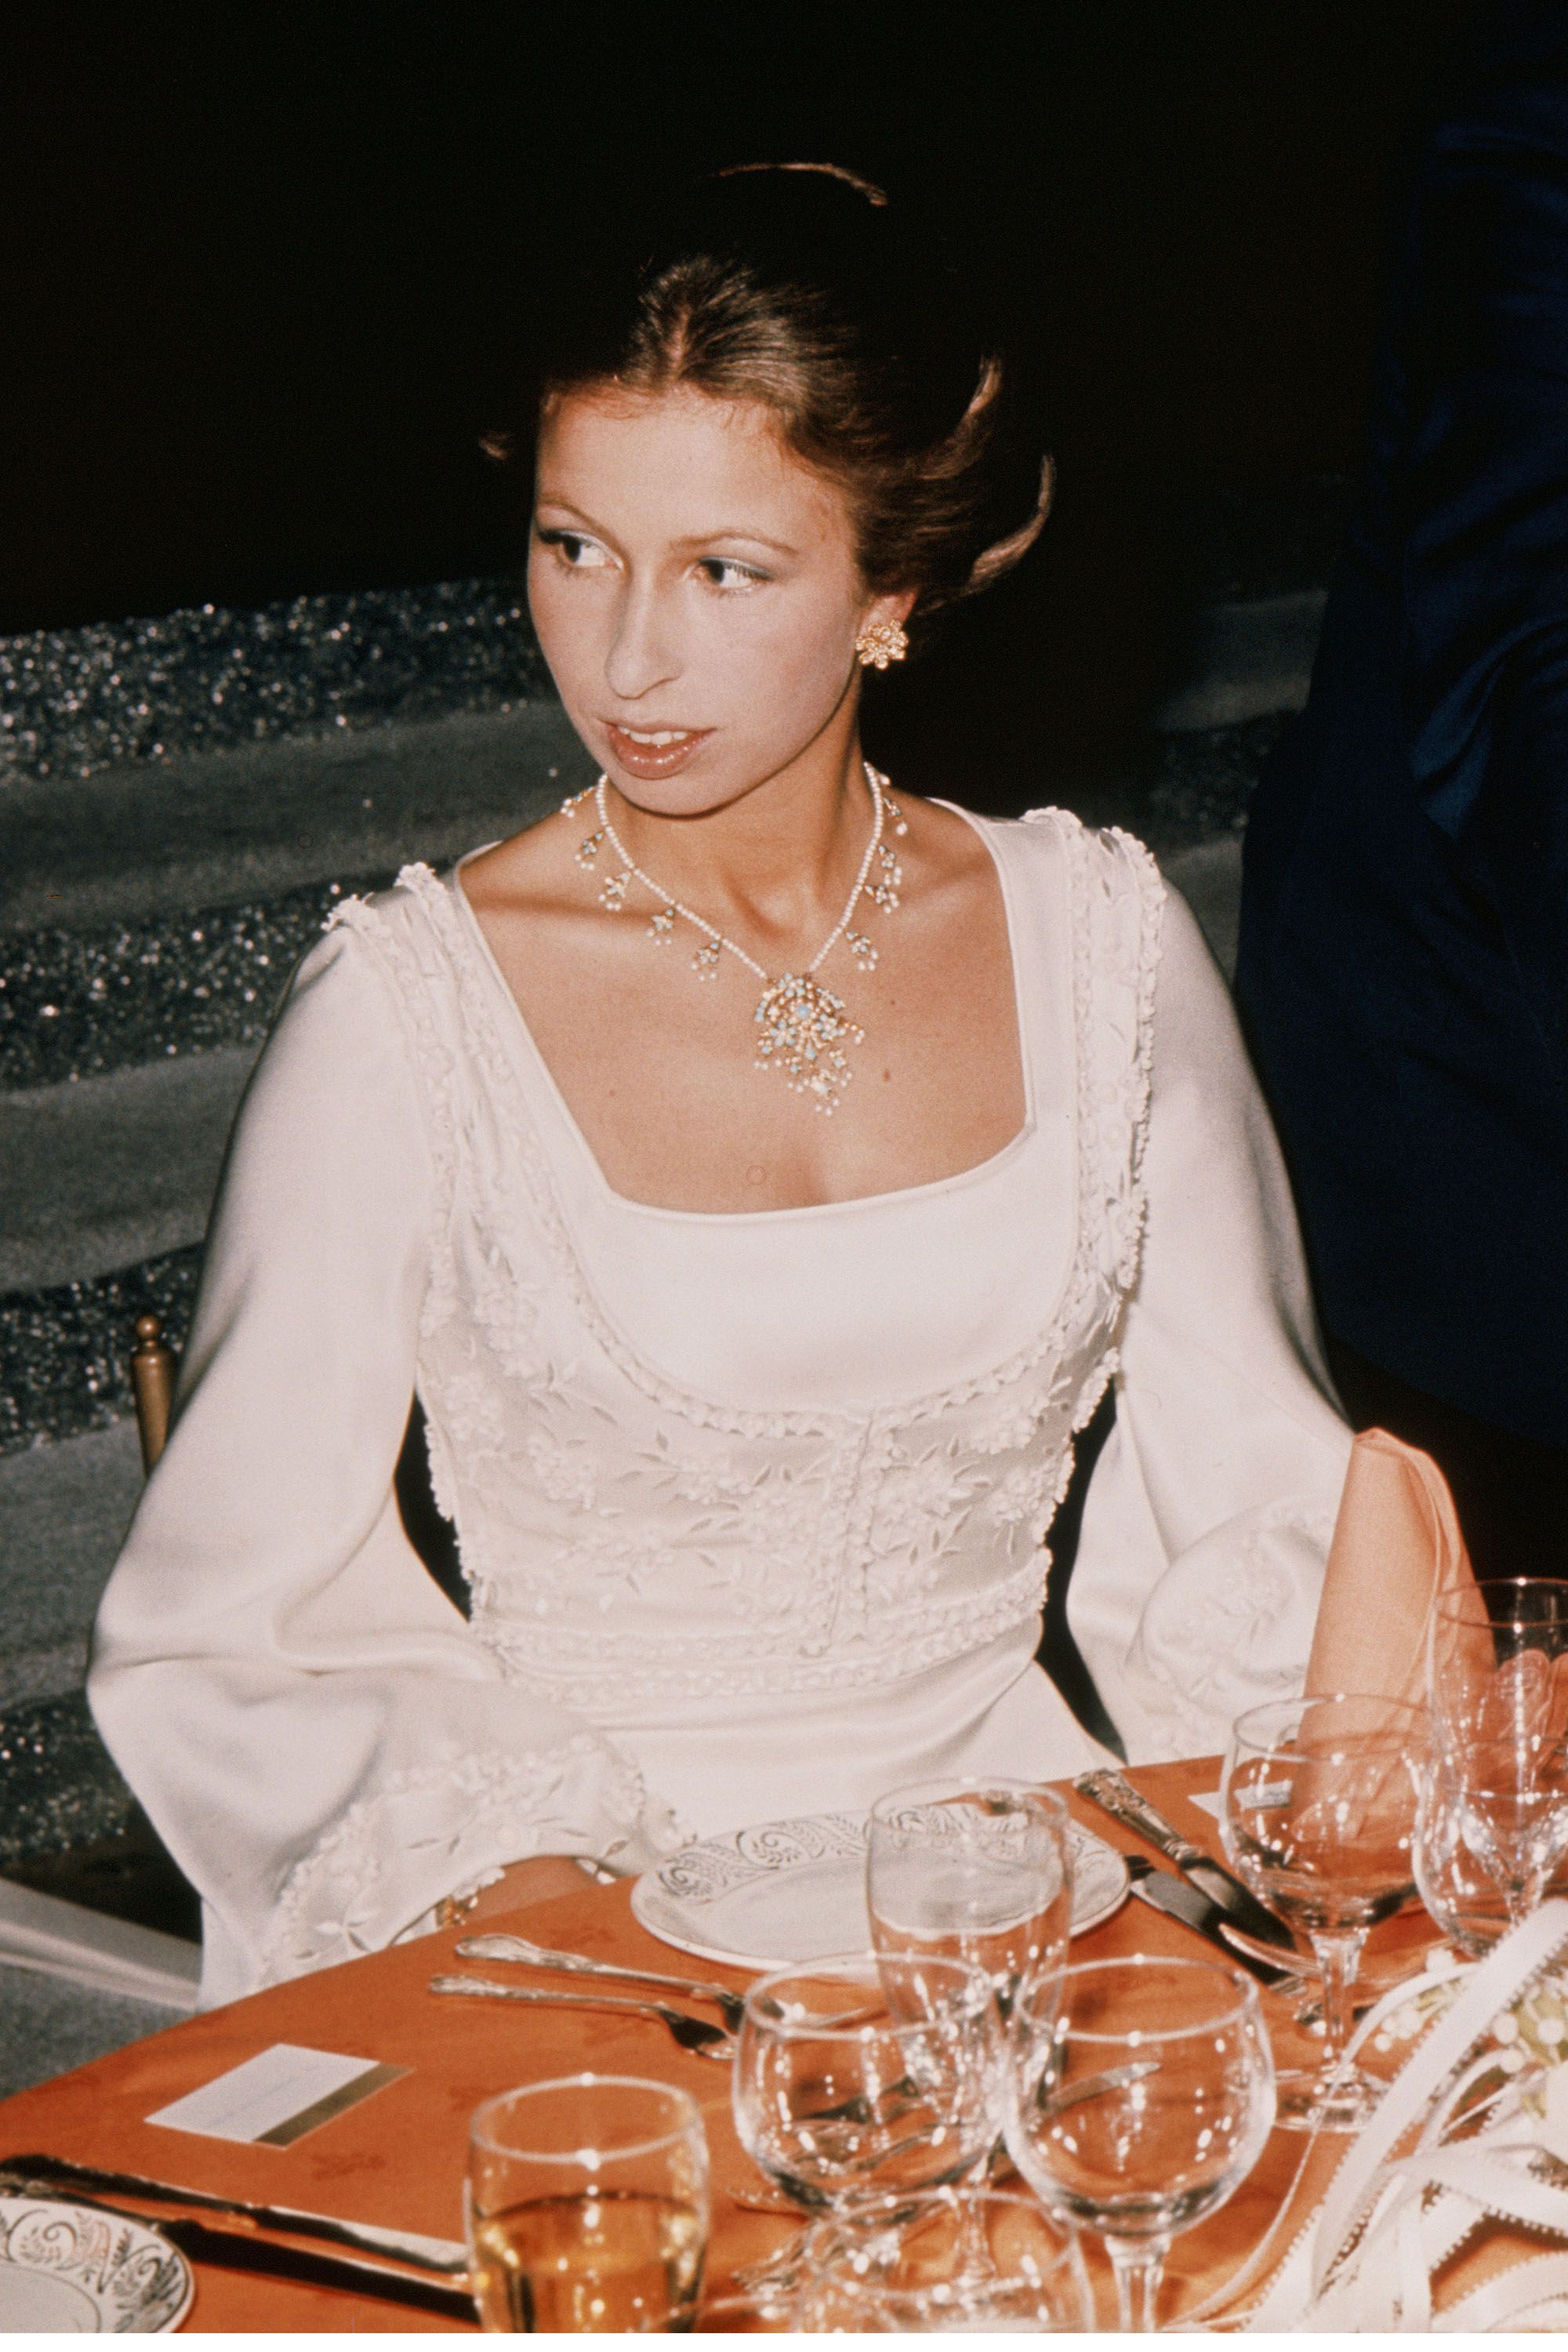 hbz-princess-anne-1973-gettyimages-107419780-1502998276